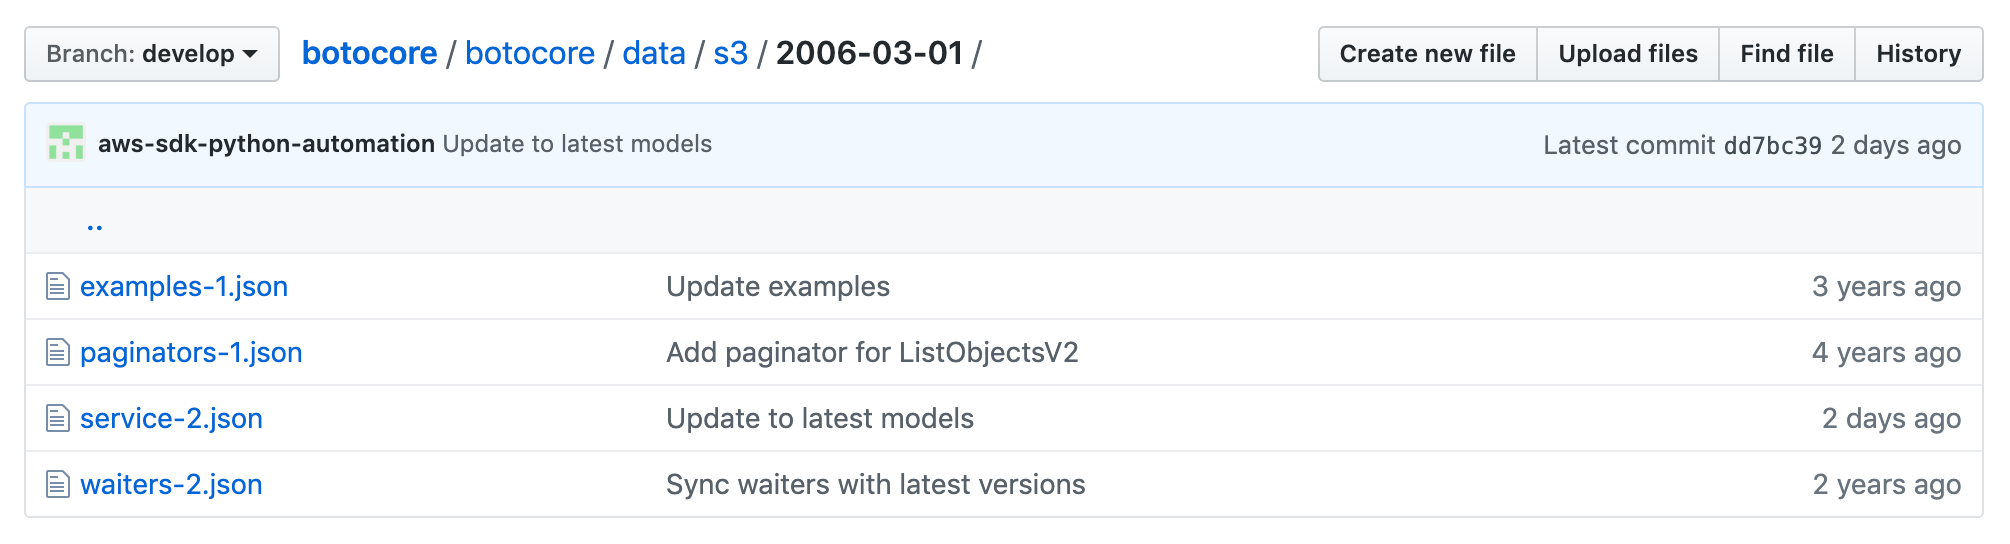 A picture of the Boto repository located here https://github.com/boto/botocore/tree/develop/botocore/data/s3/2006-03-01